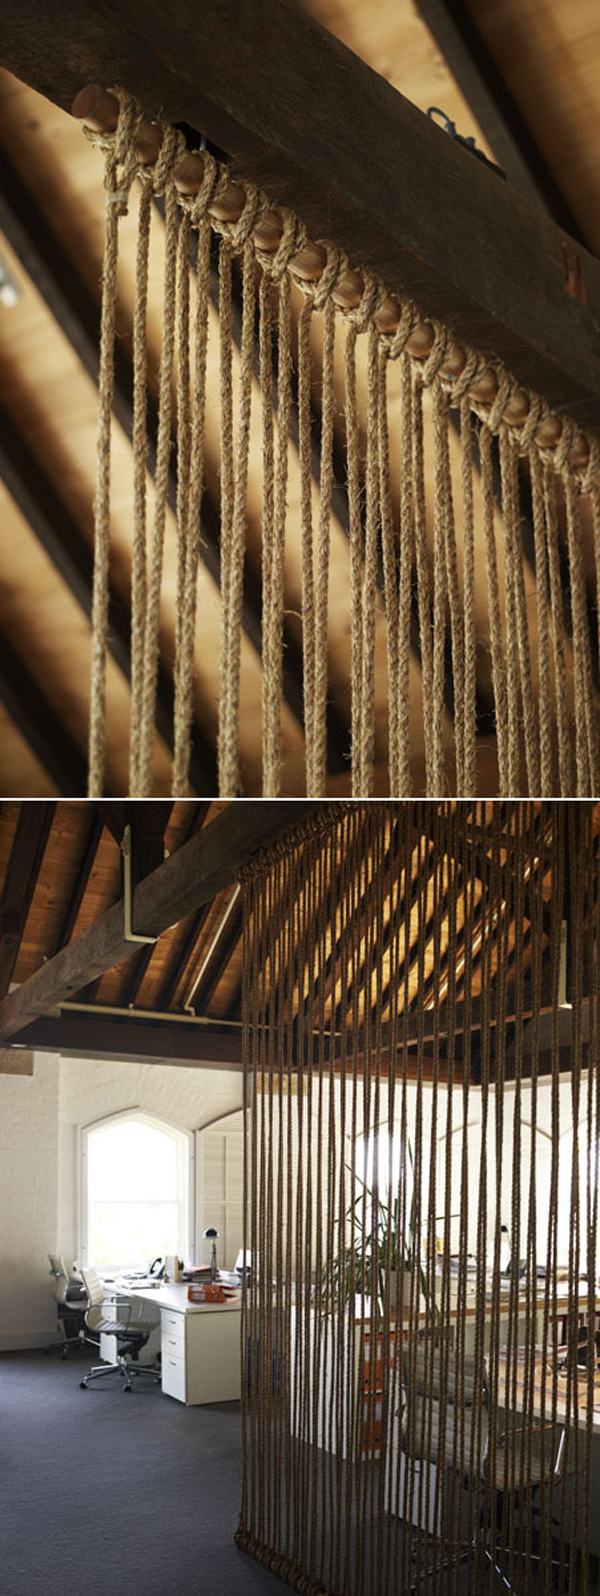 15 Simple Rope Wall For Room Dividers Homemydesign